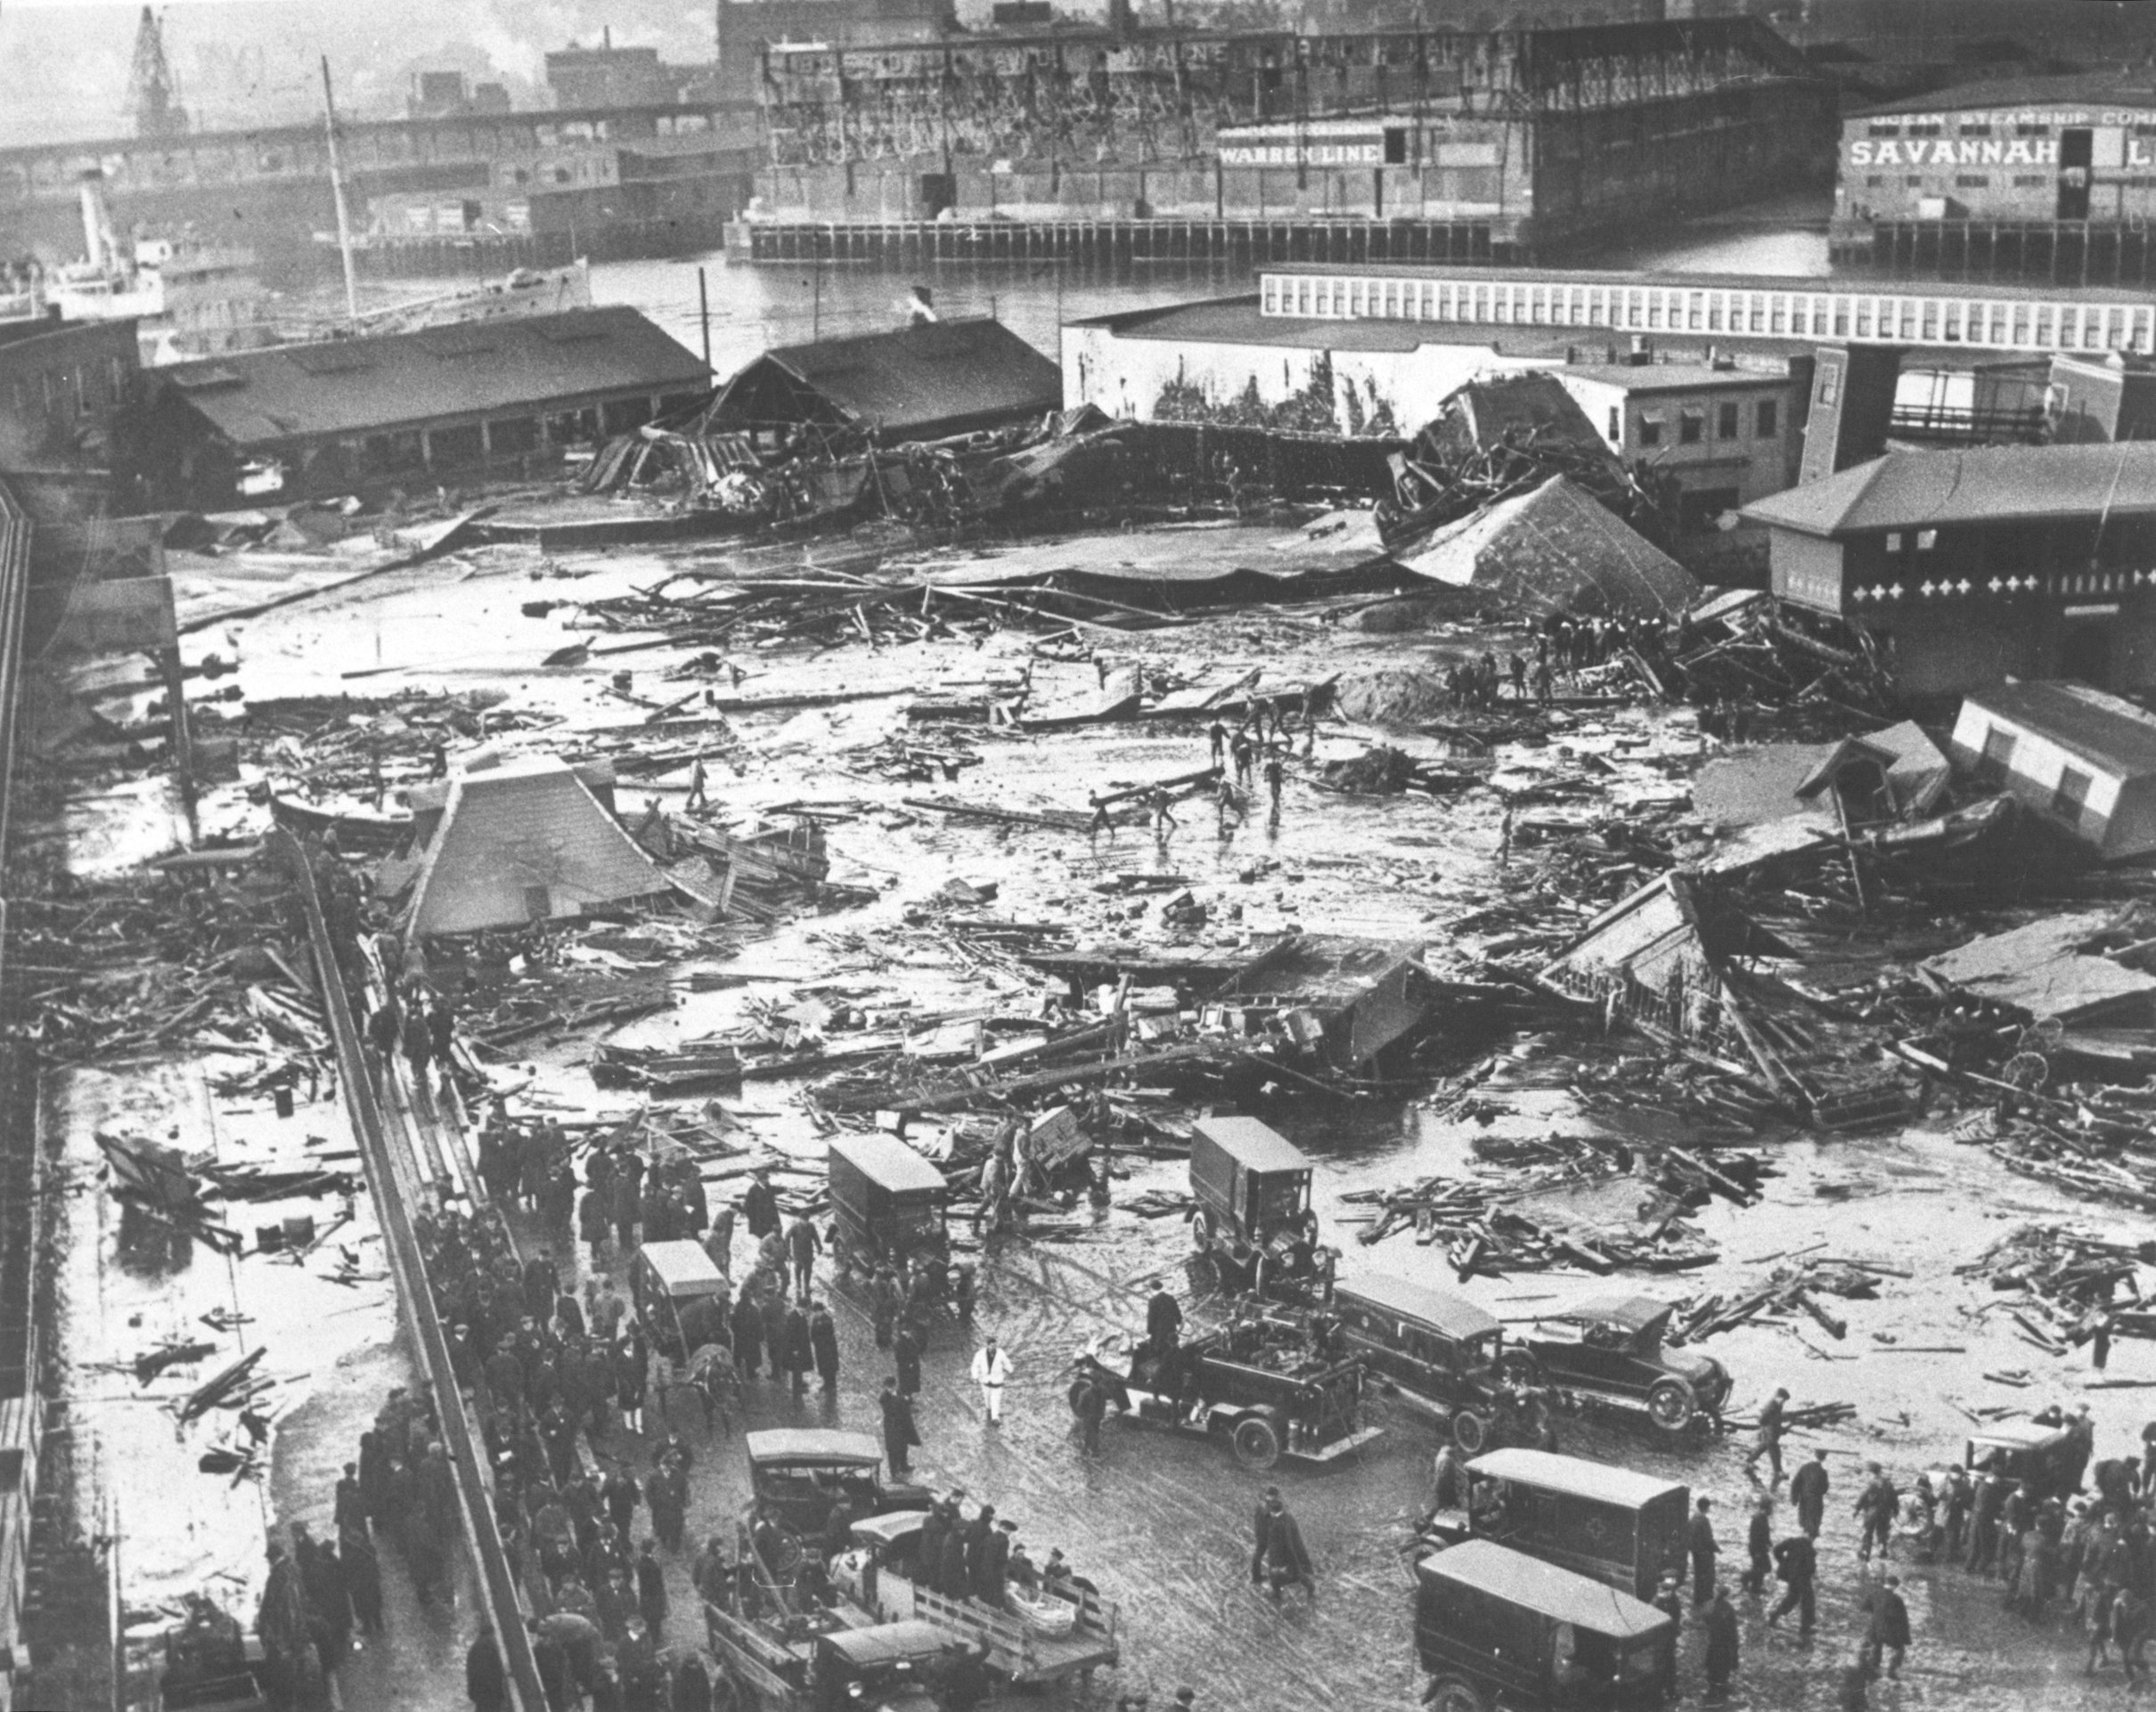 A molasses tank collapsed and caused widespread damage in Boston's North End in January 1919. The incident is commonly referred to as the Great Molasses Flood.